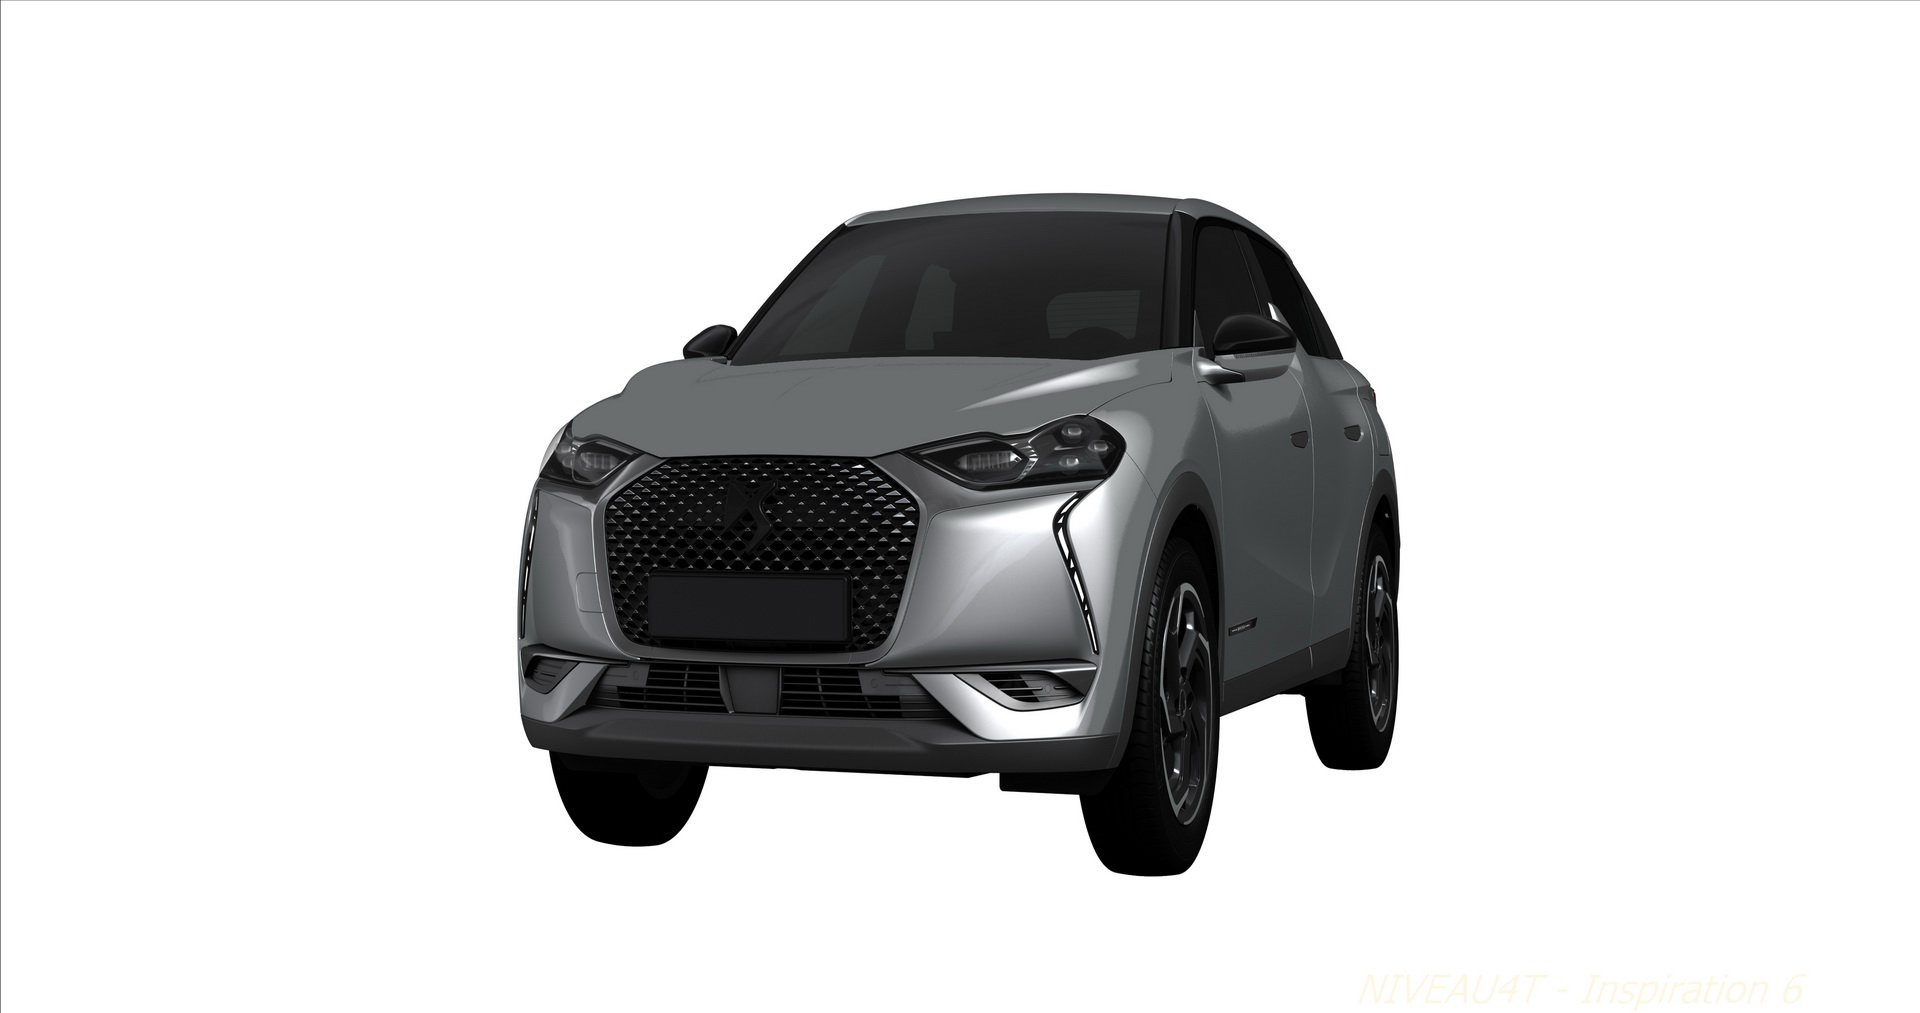 DS 3 Crossback photos (4)